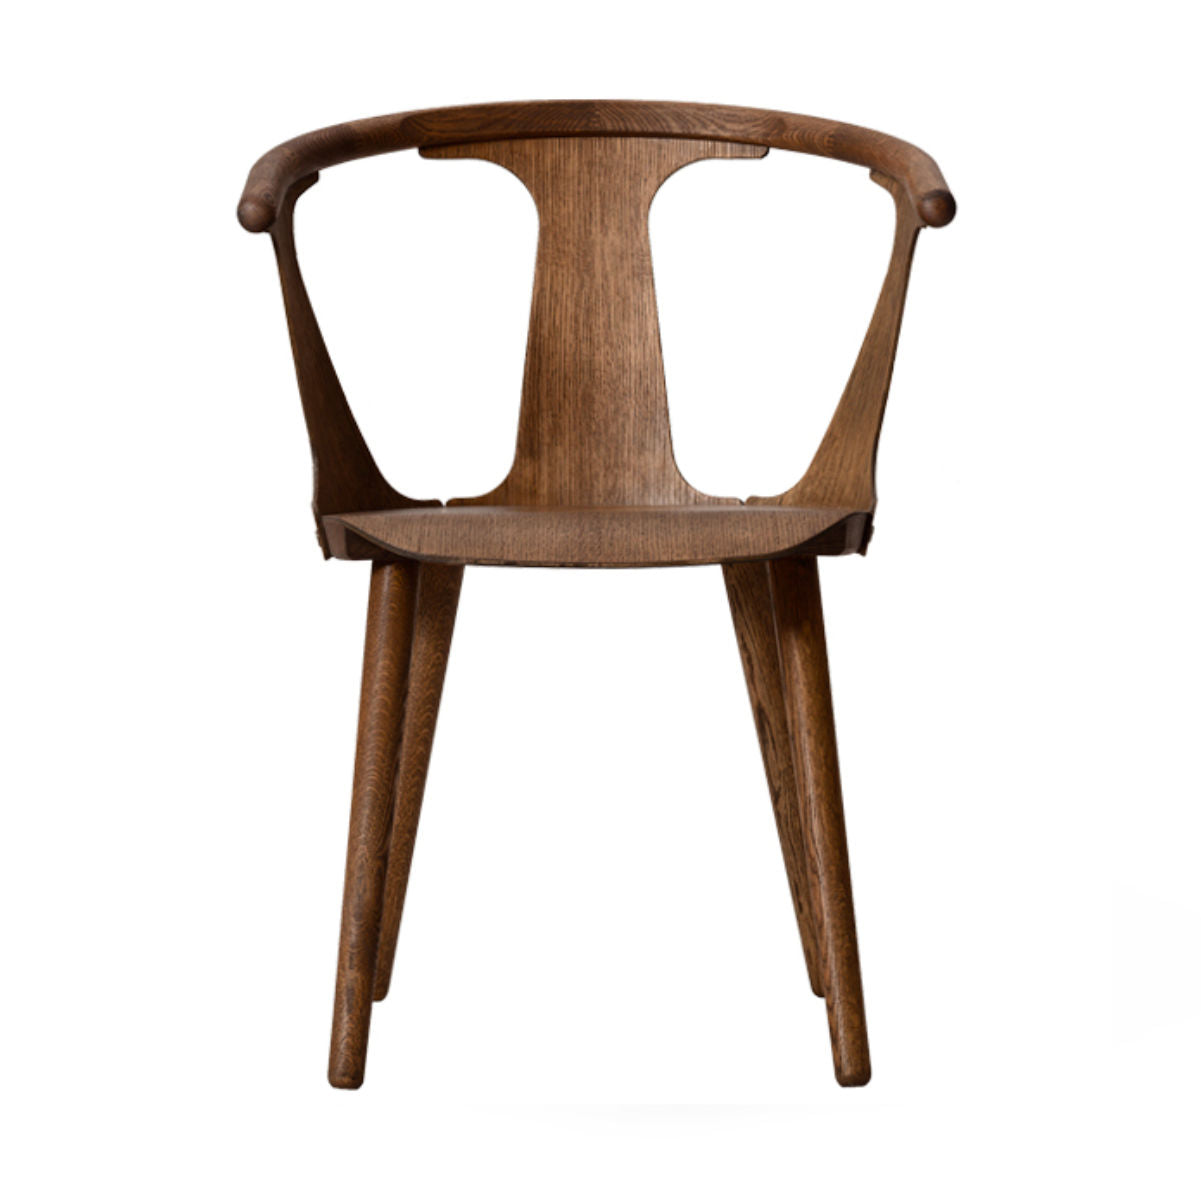 &Tradition SK1 In Between Chair , Smoked Oiled Oak